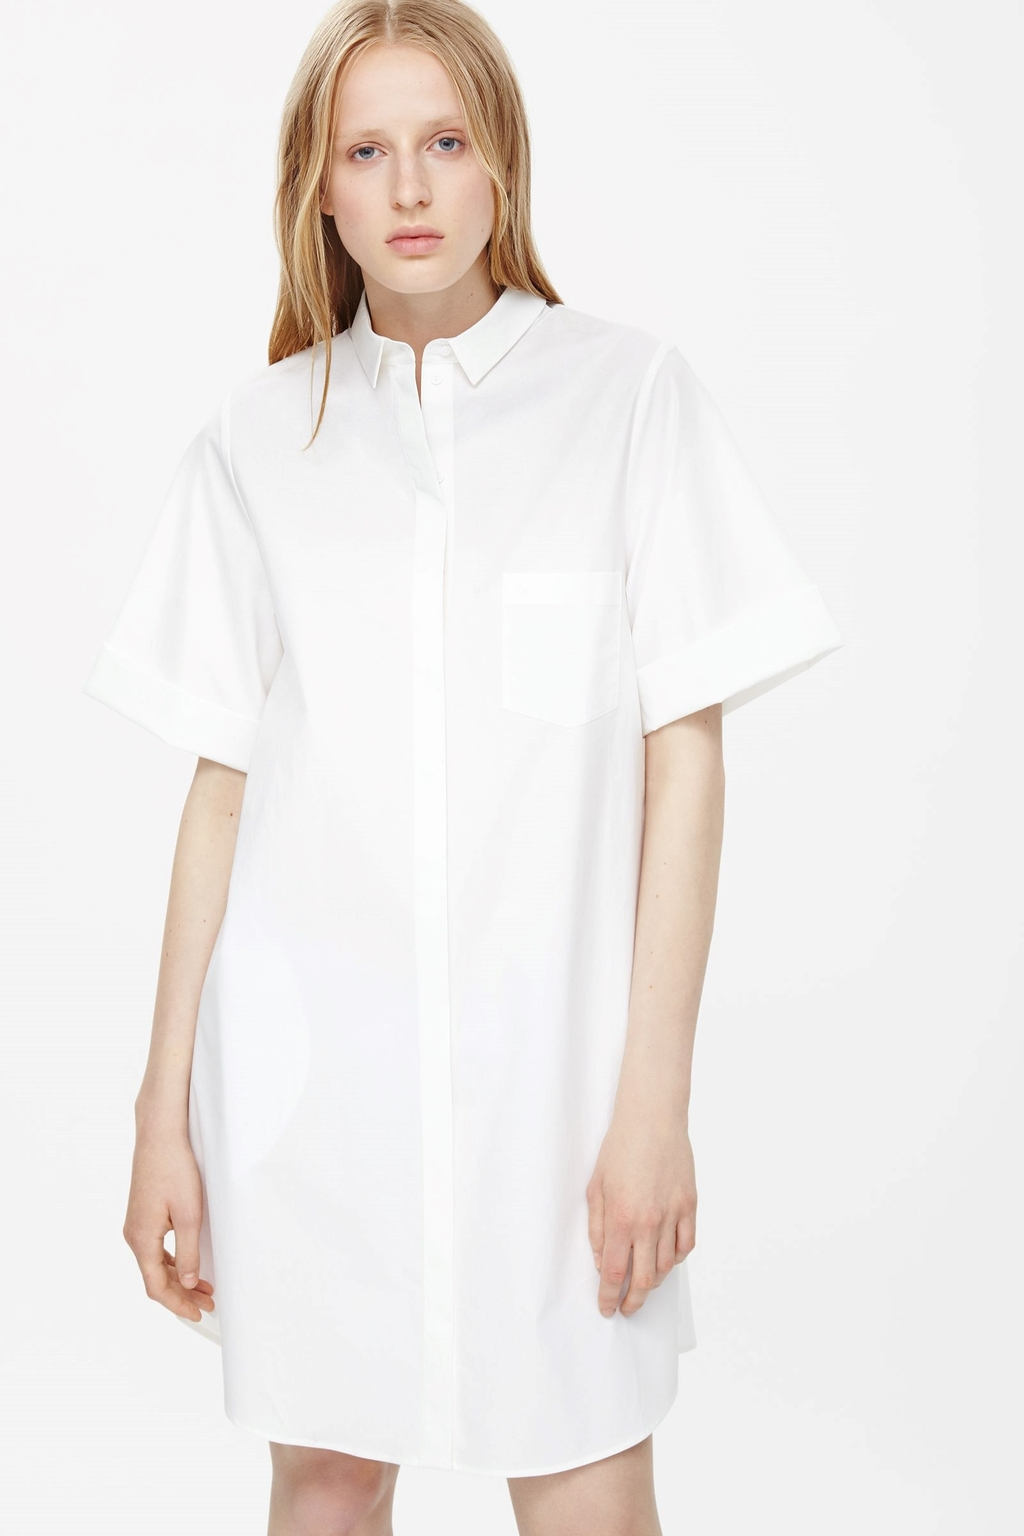 Cuffed Shirt Dress - style: shirt; length: mid thigh; neckline: shirt collar/peter pan/zip with opening; pattern: plain; predominant colour: white; occasions: casual; fit: straight cut; fibres: cotton - 100%; sleeve length: short sleeve; sleeve style: standard; texture group: cotton feel fabrics; pattern type: fabric; season: a/w 2015; wardrobe: basic